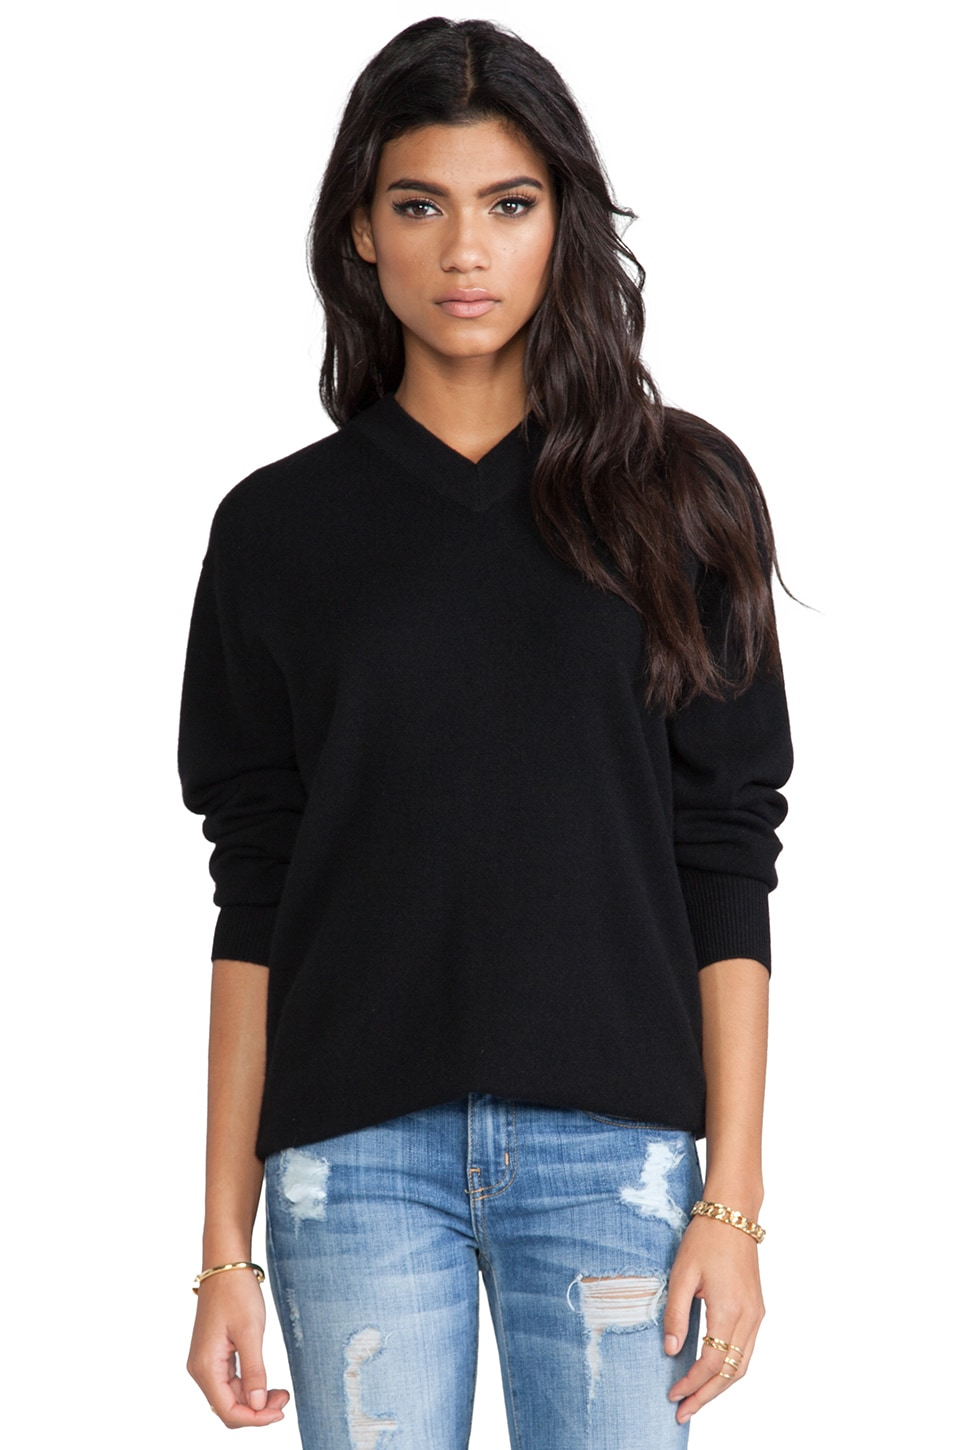 DemyLee Roberta Cashmere V Neck in Black